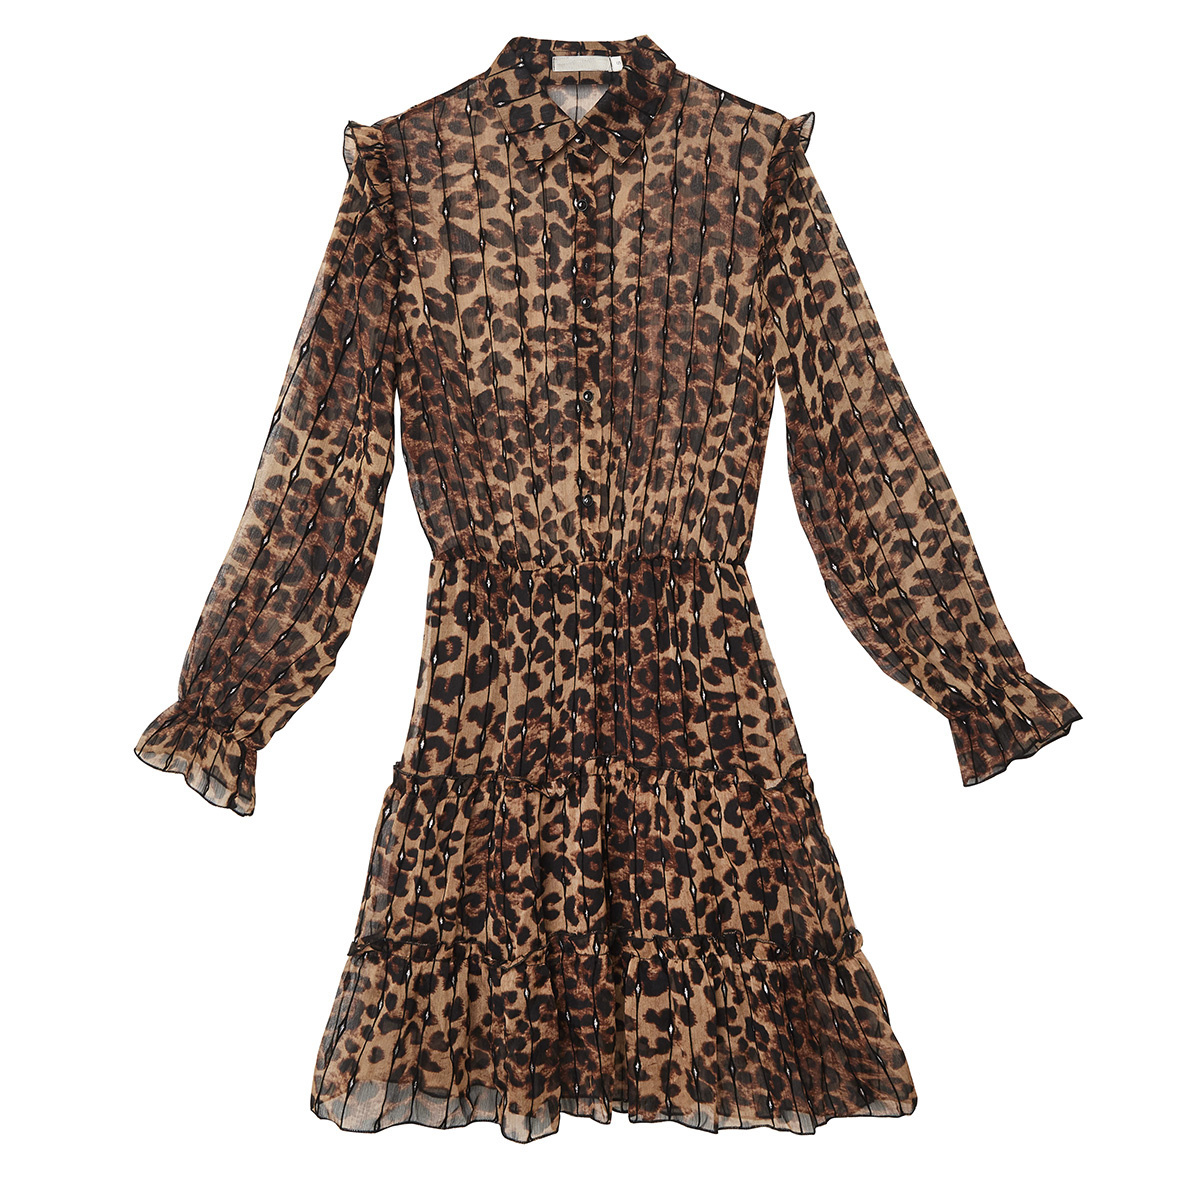 Joboly Leopard Dress